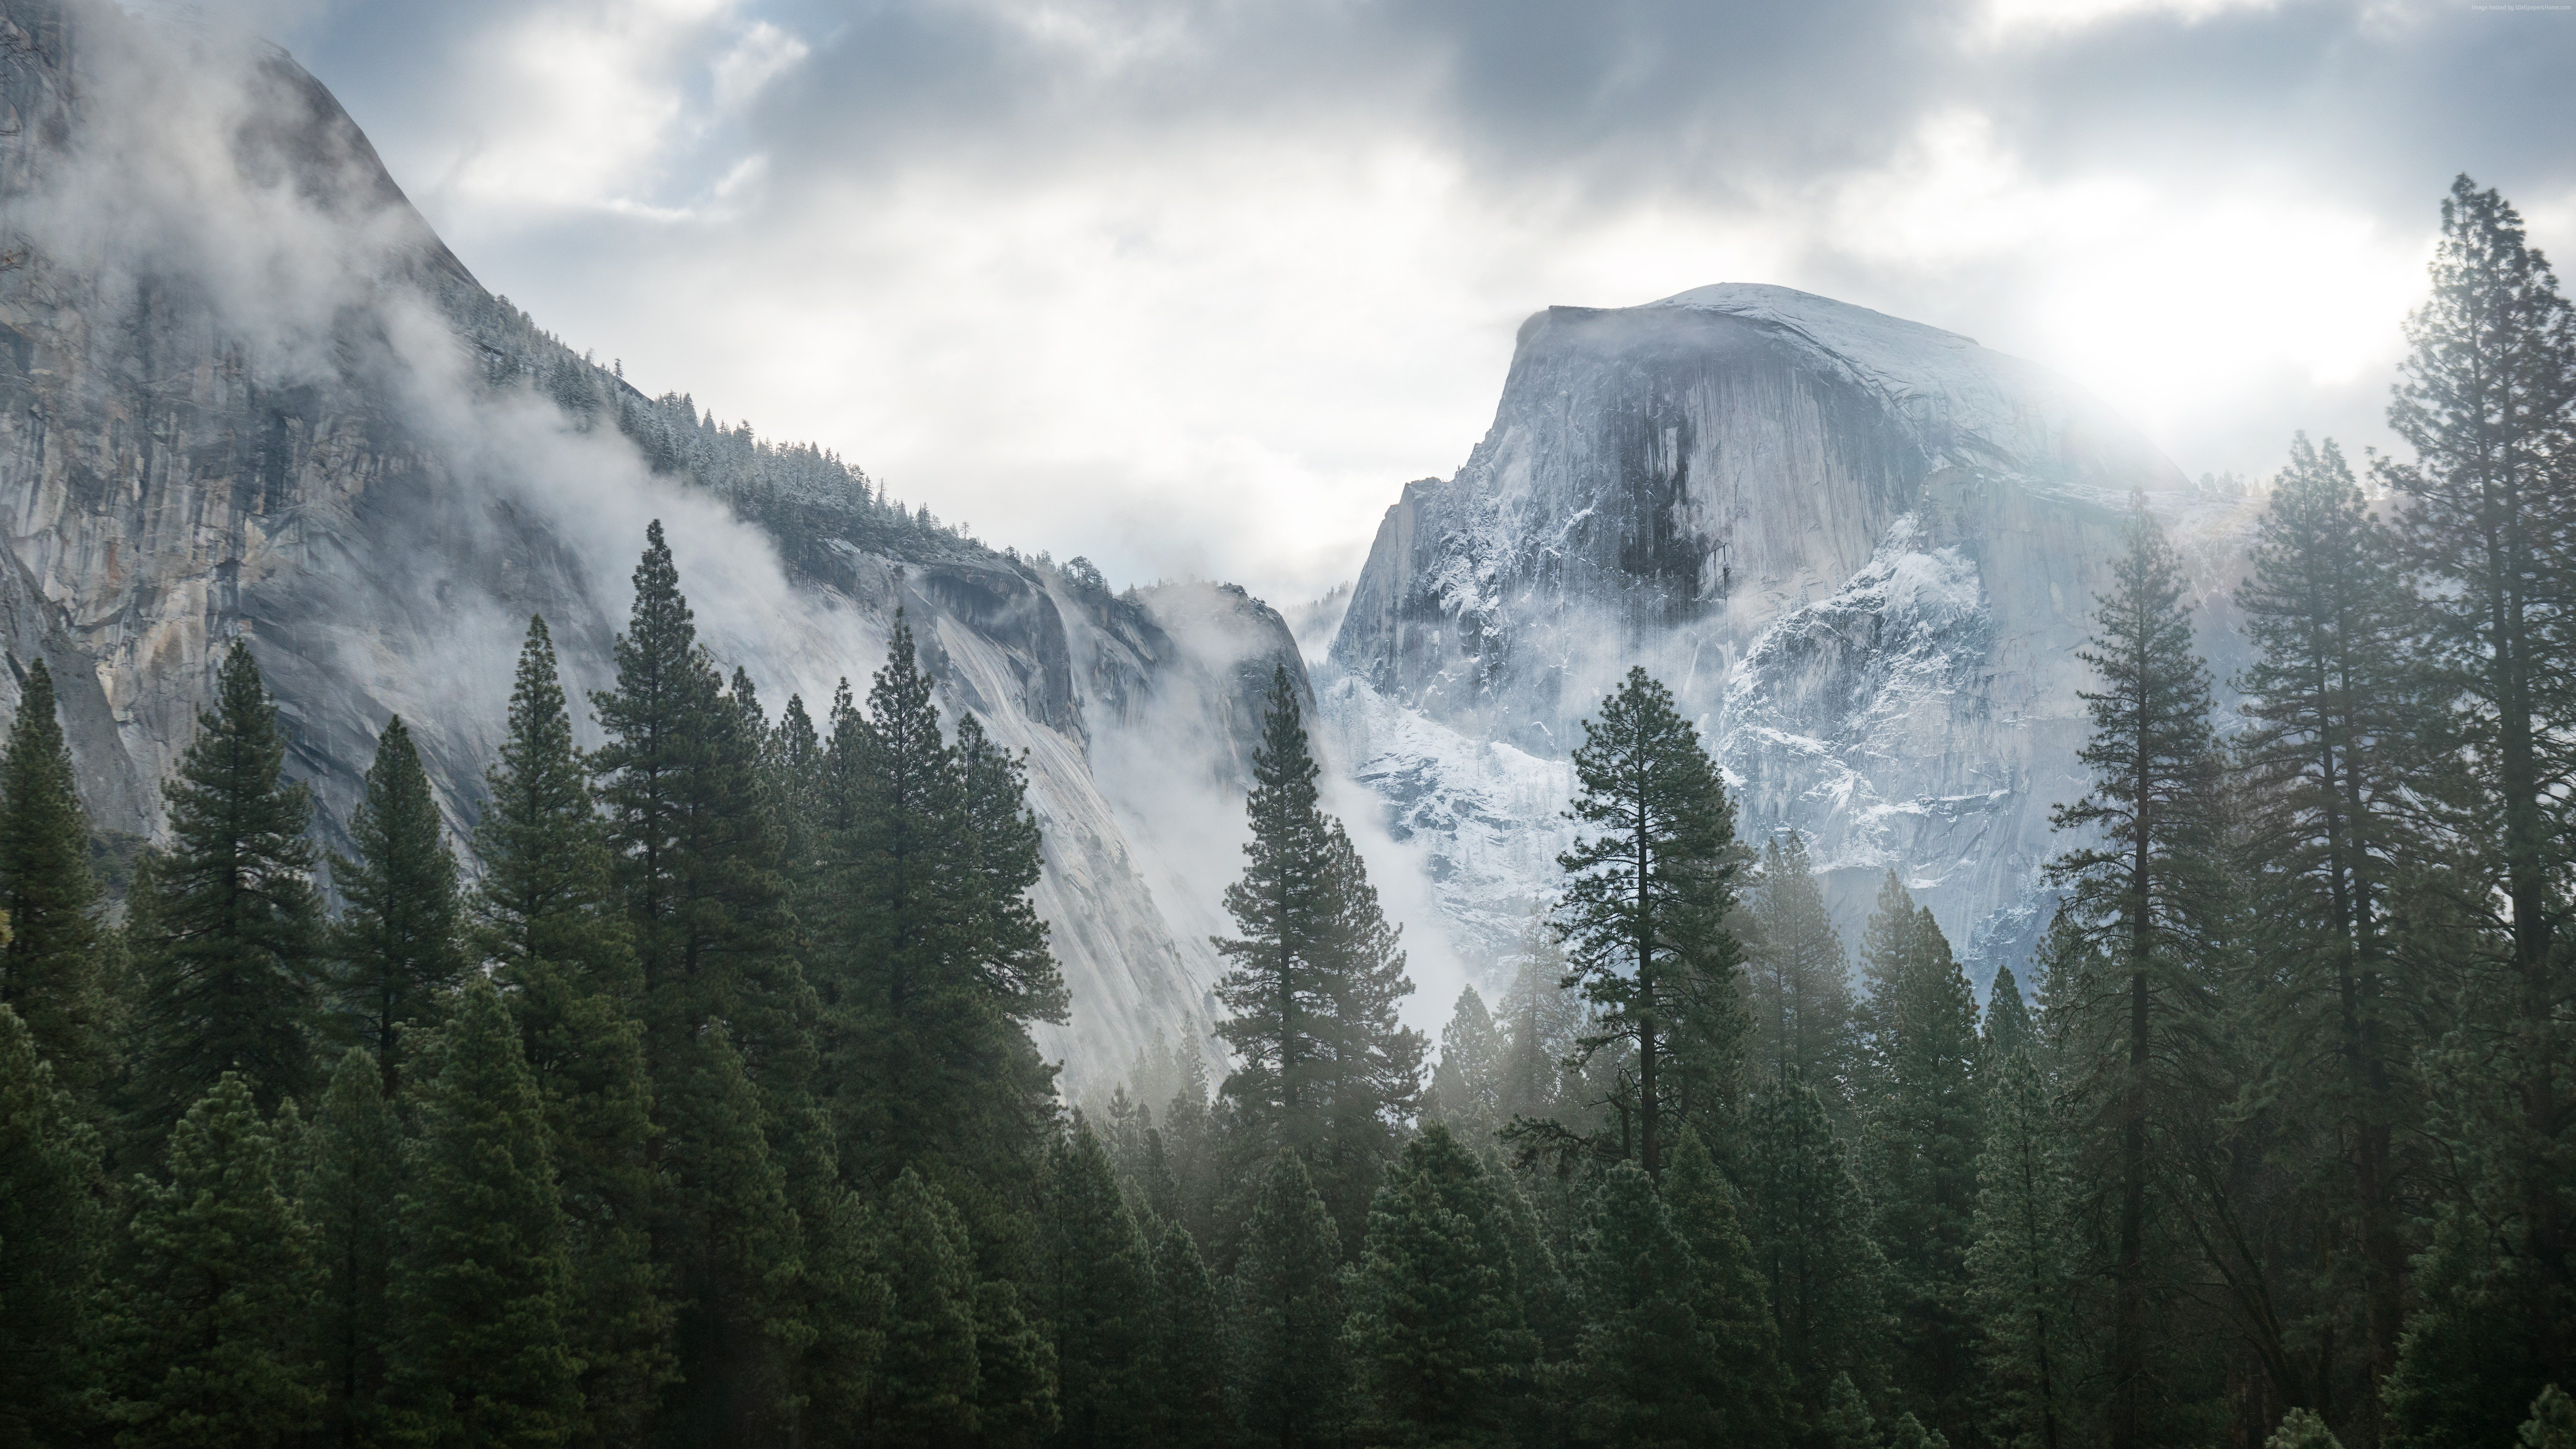 Forest Yosemite 5k wallpapers forest OSX apple mountains 5932x3337